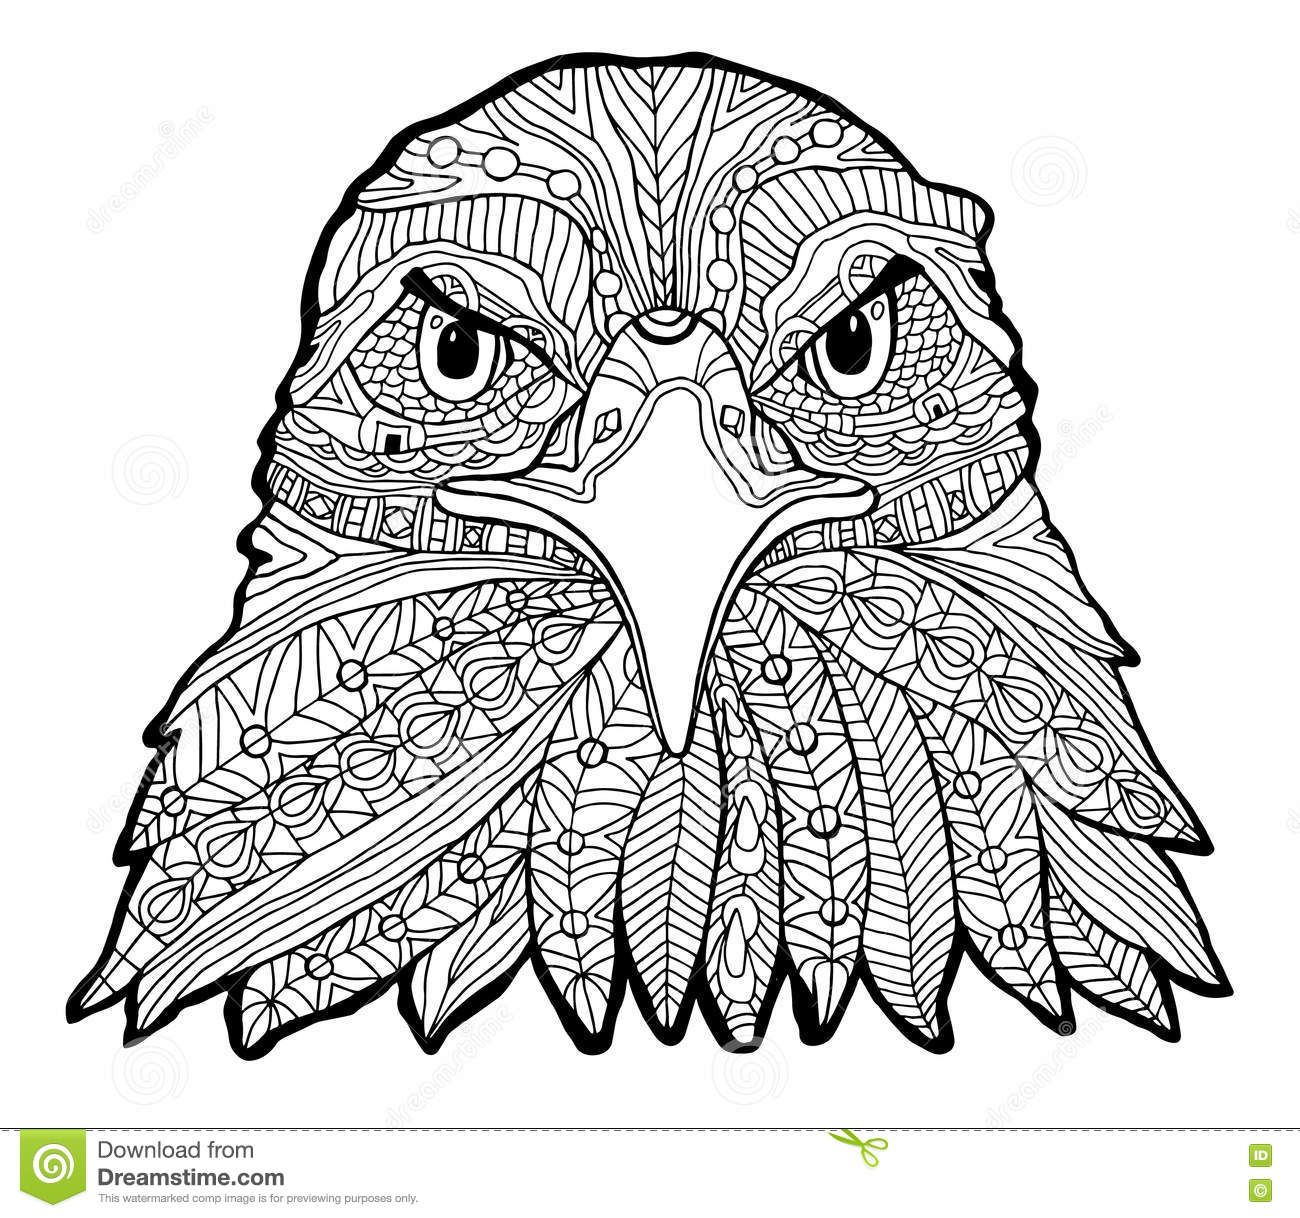 Image Result For Printable Adult Eagle Front View Coloring